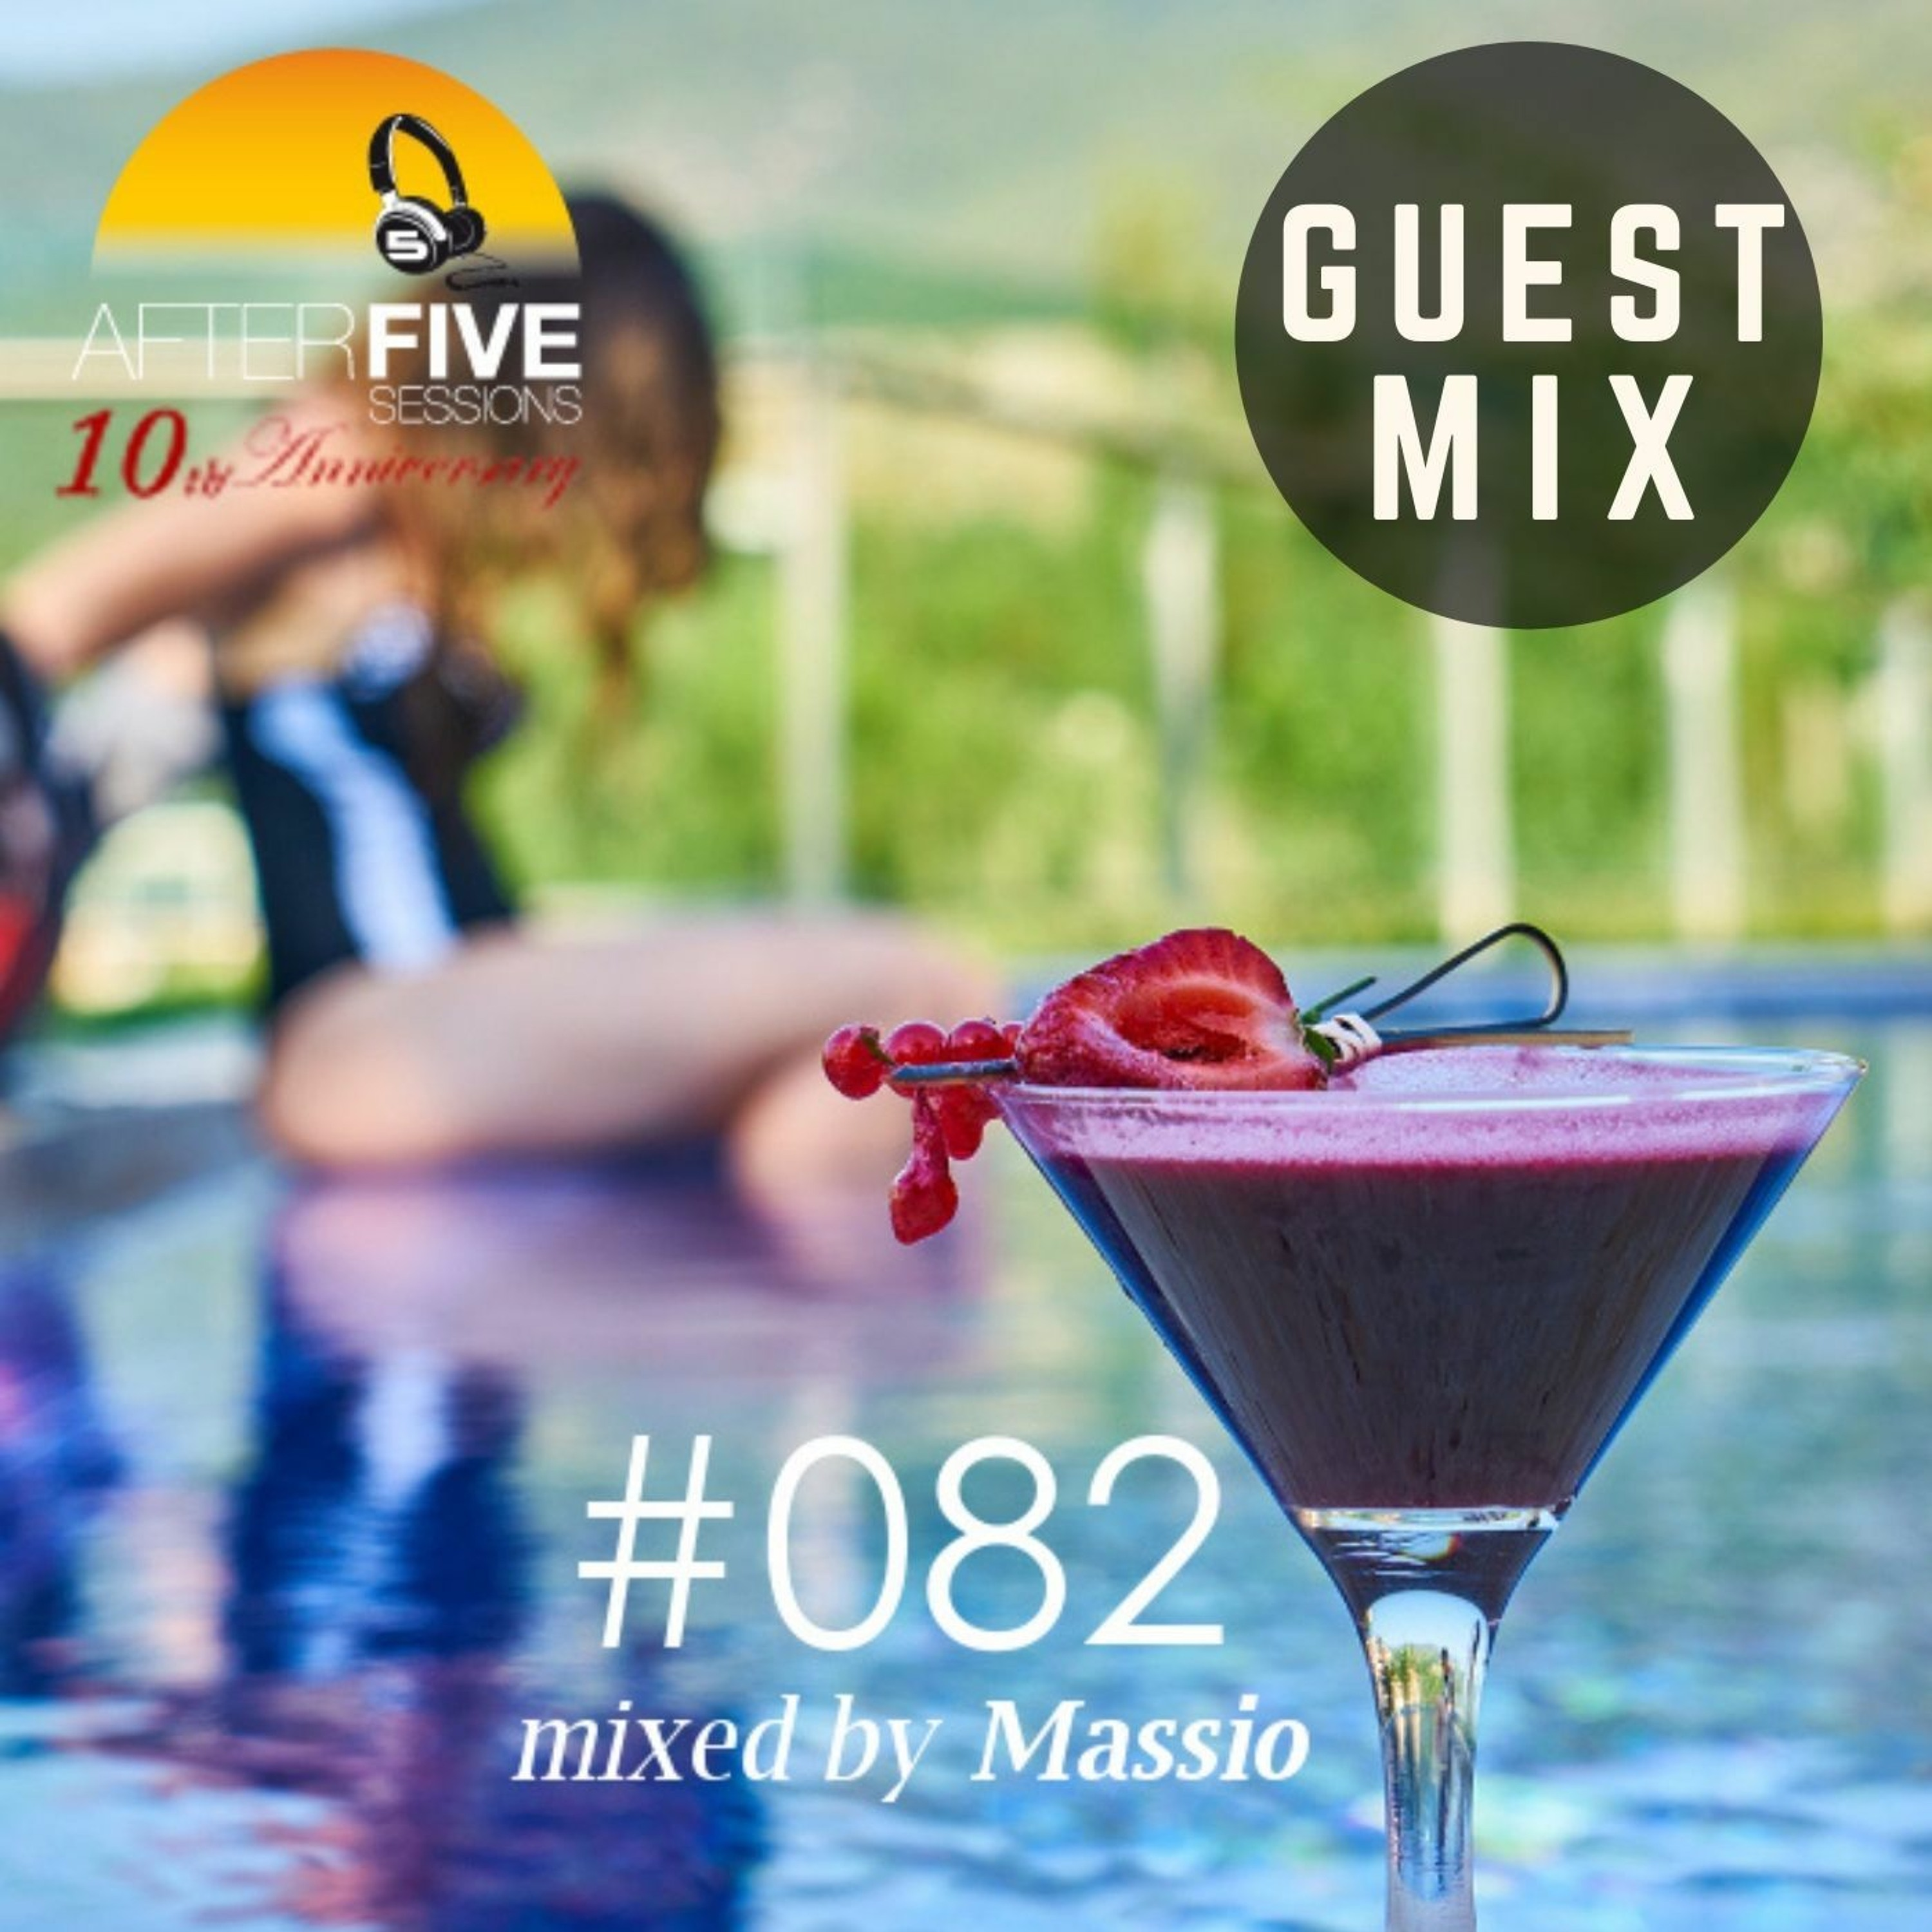 Episode 82 mixed by Massio